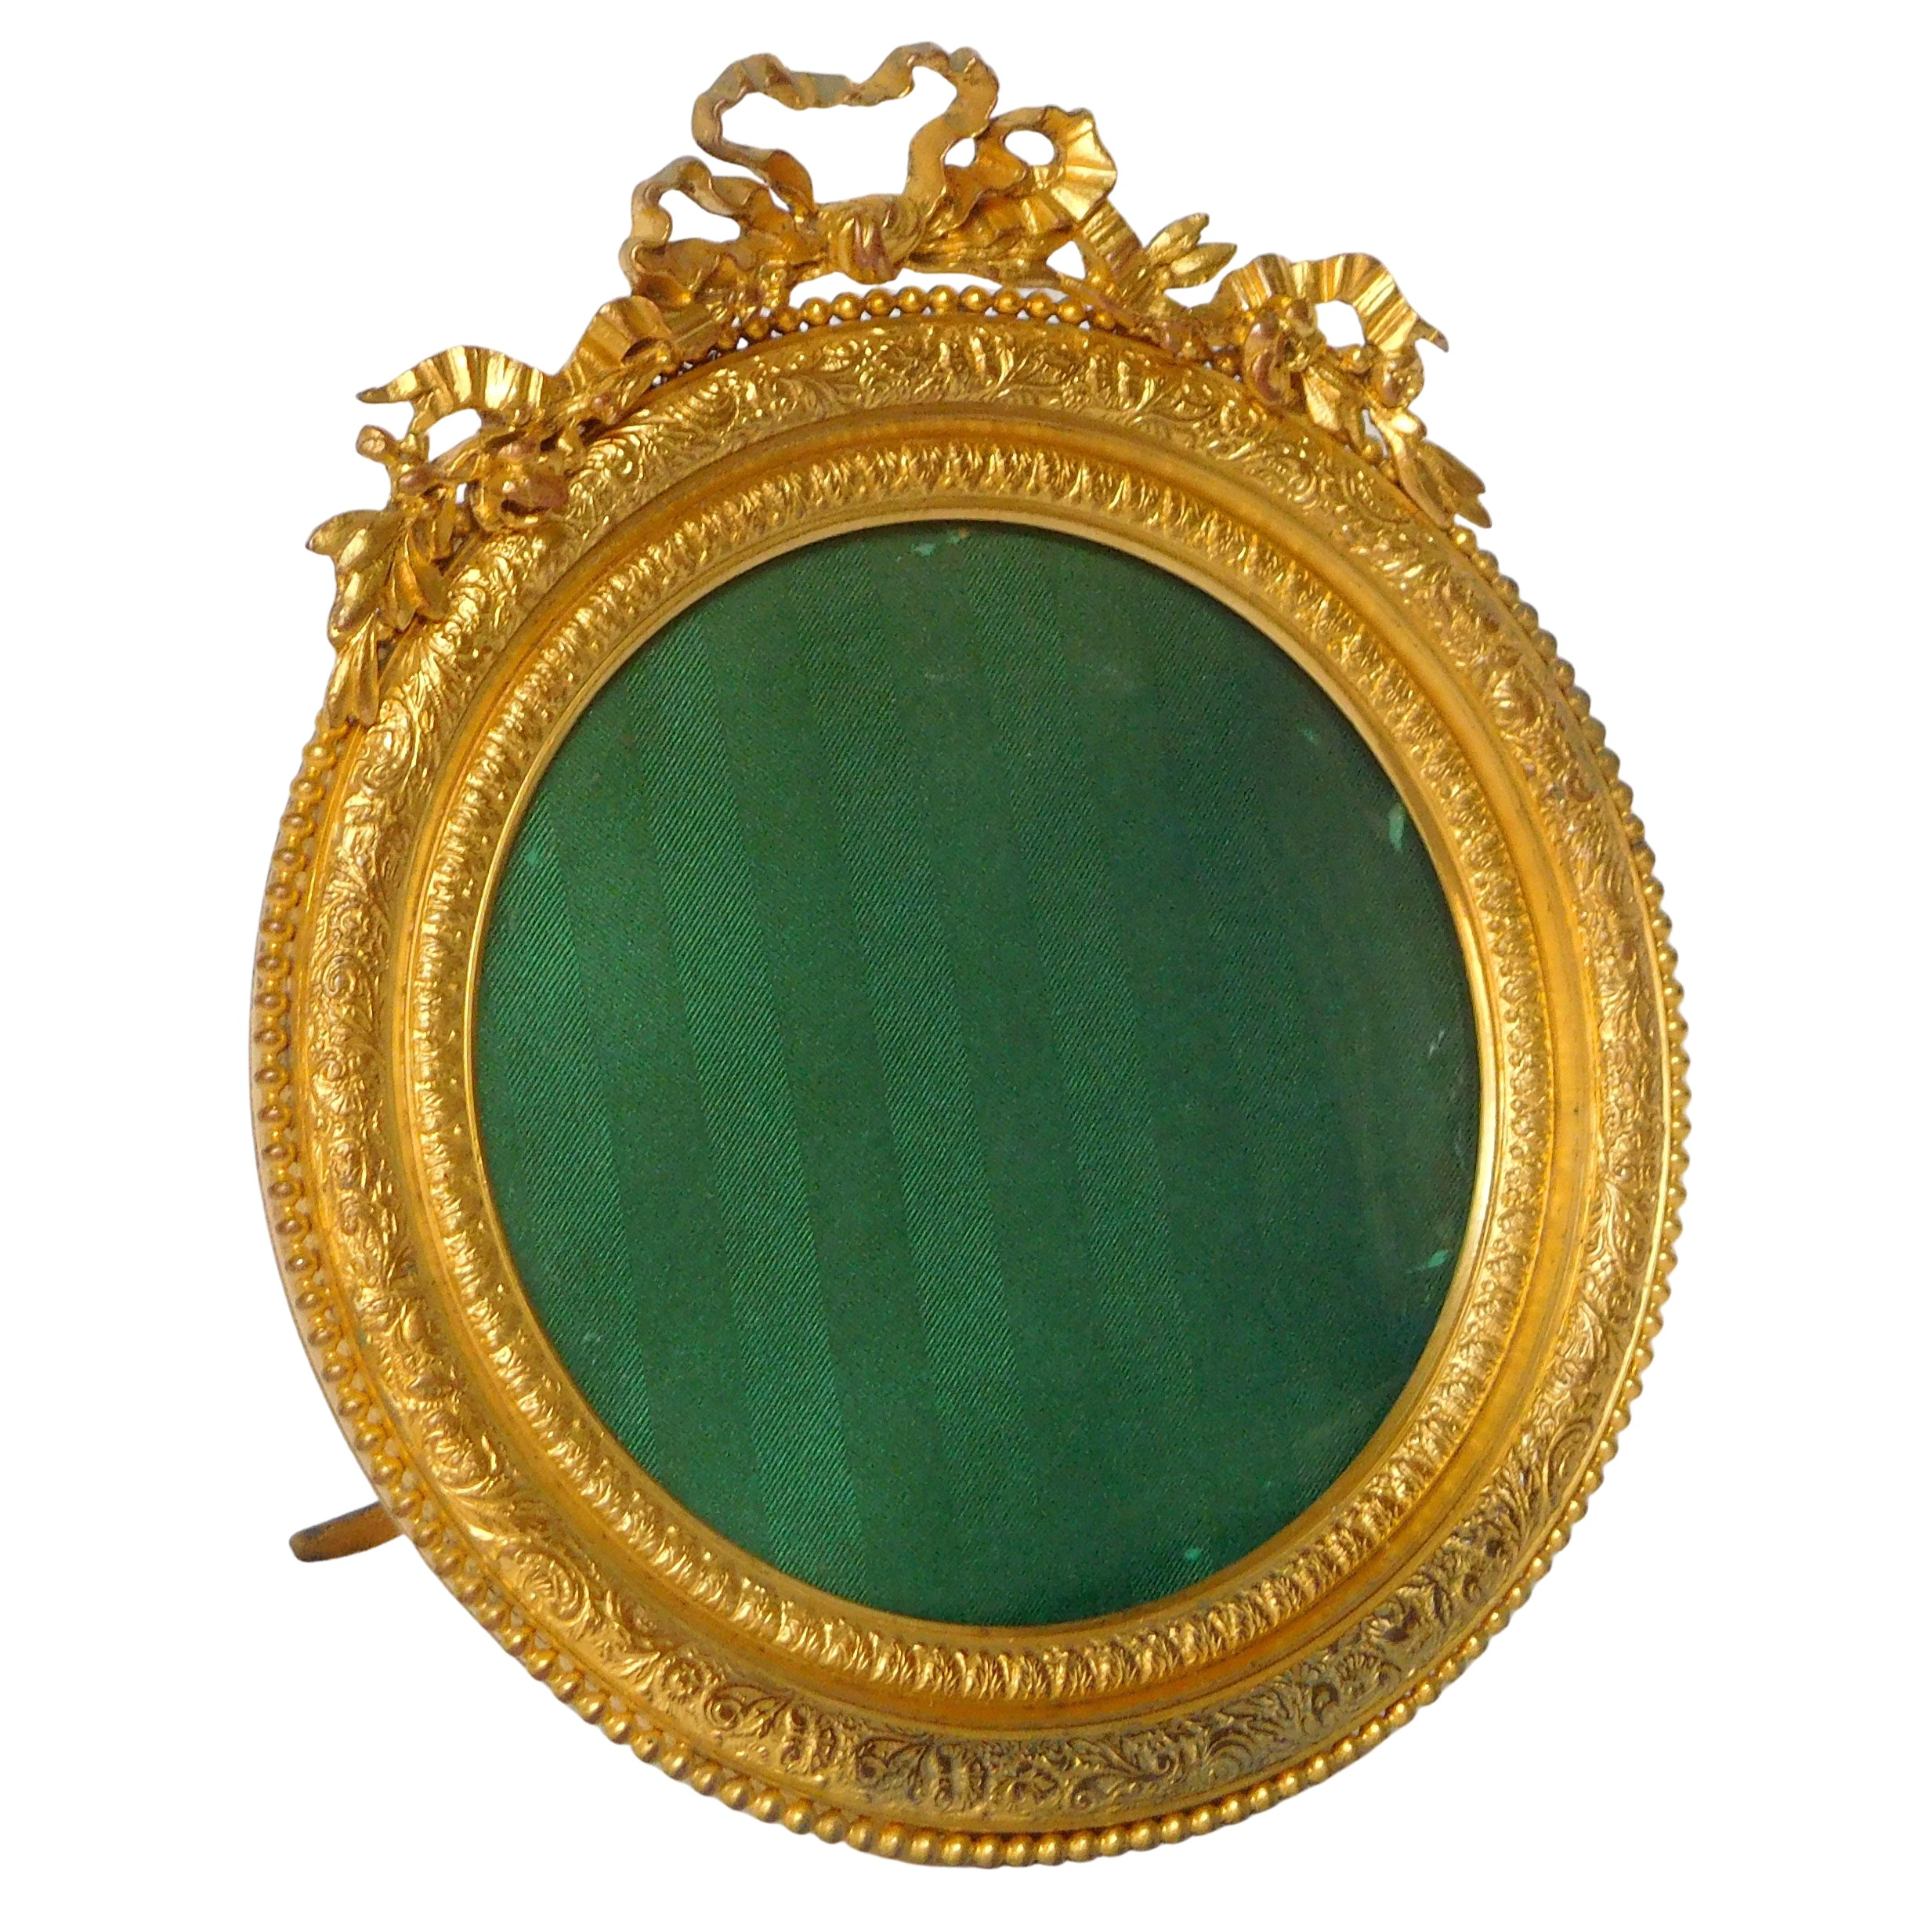 Large miniature ormolu frame, Louis XVI style, late 19th century production